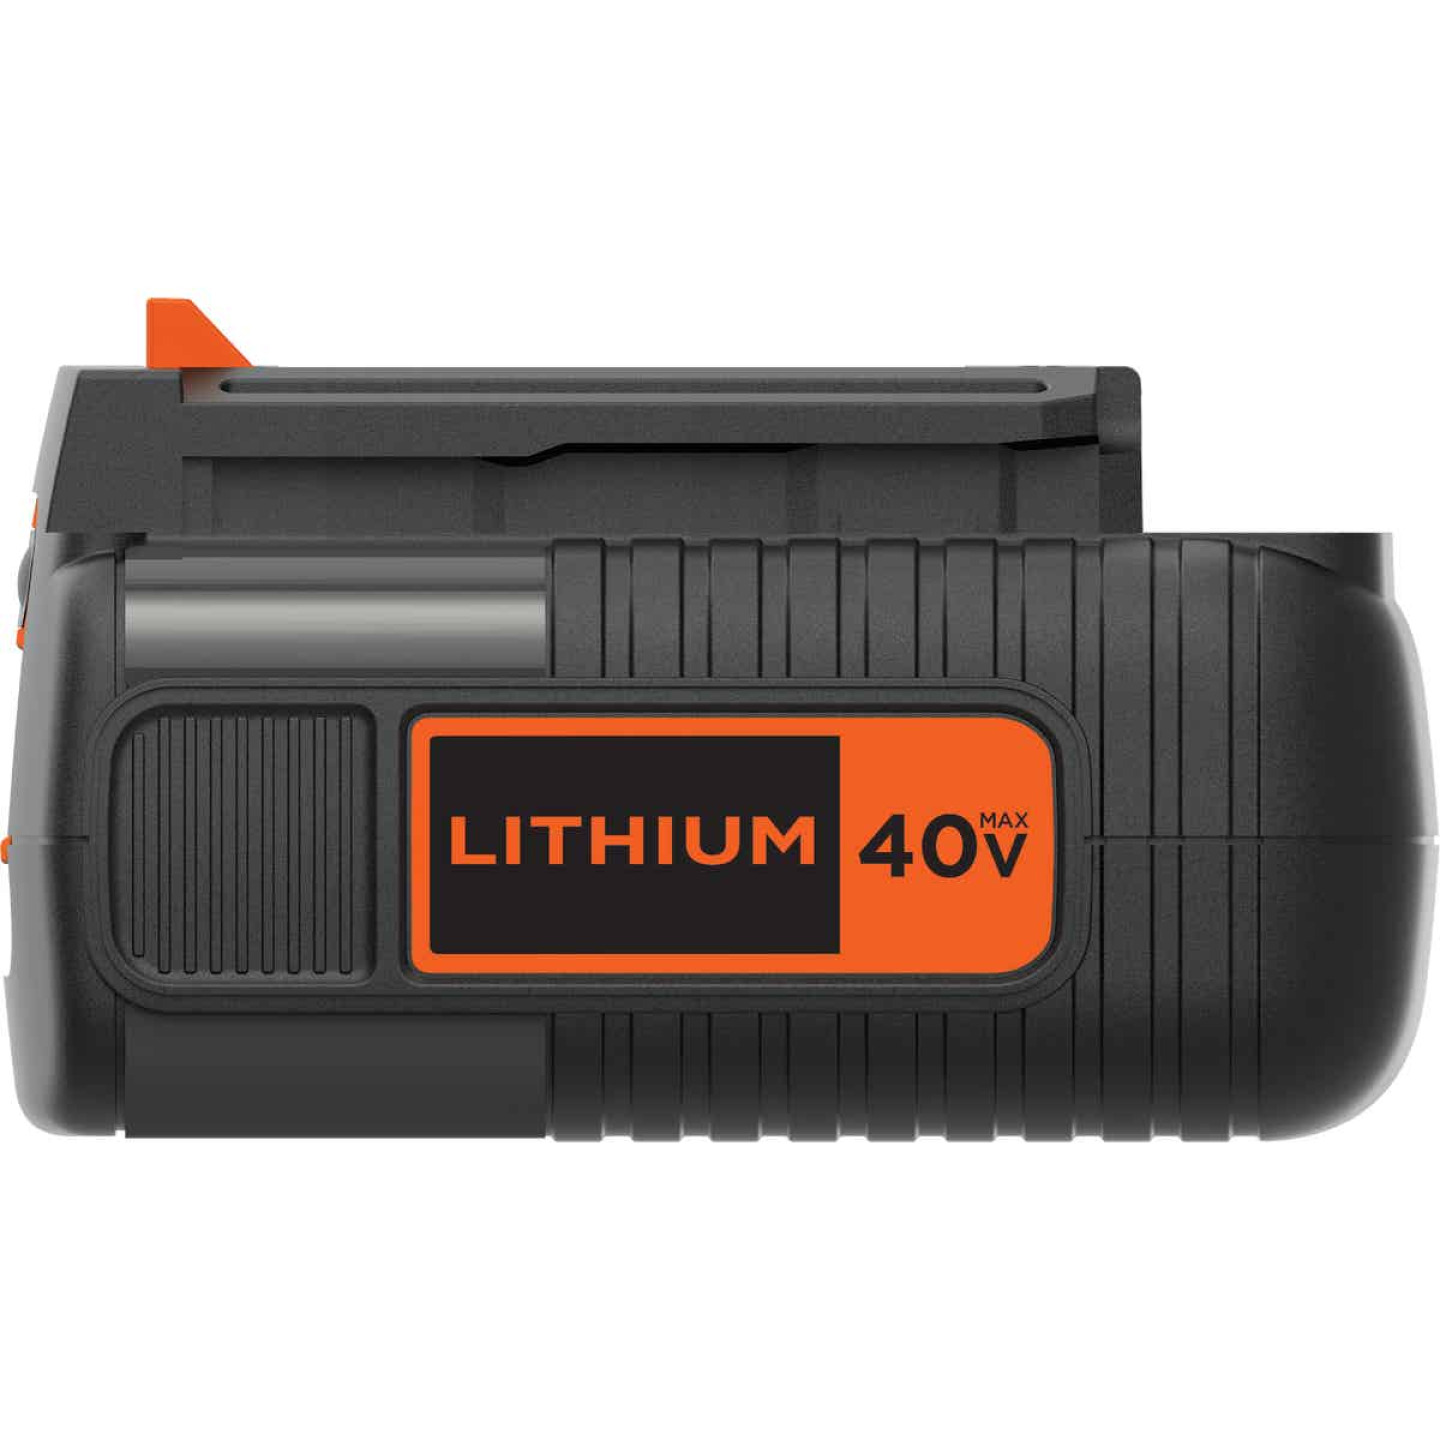 Black & Decker 40V 2 Ah Power Tool Replacement Battery Image 2